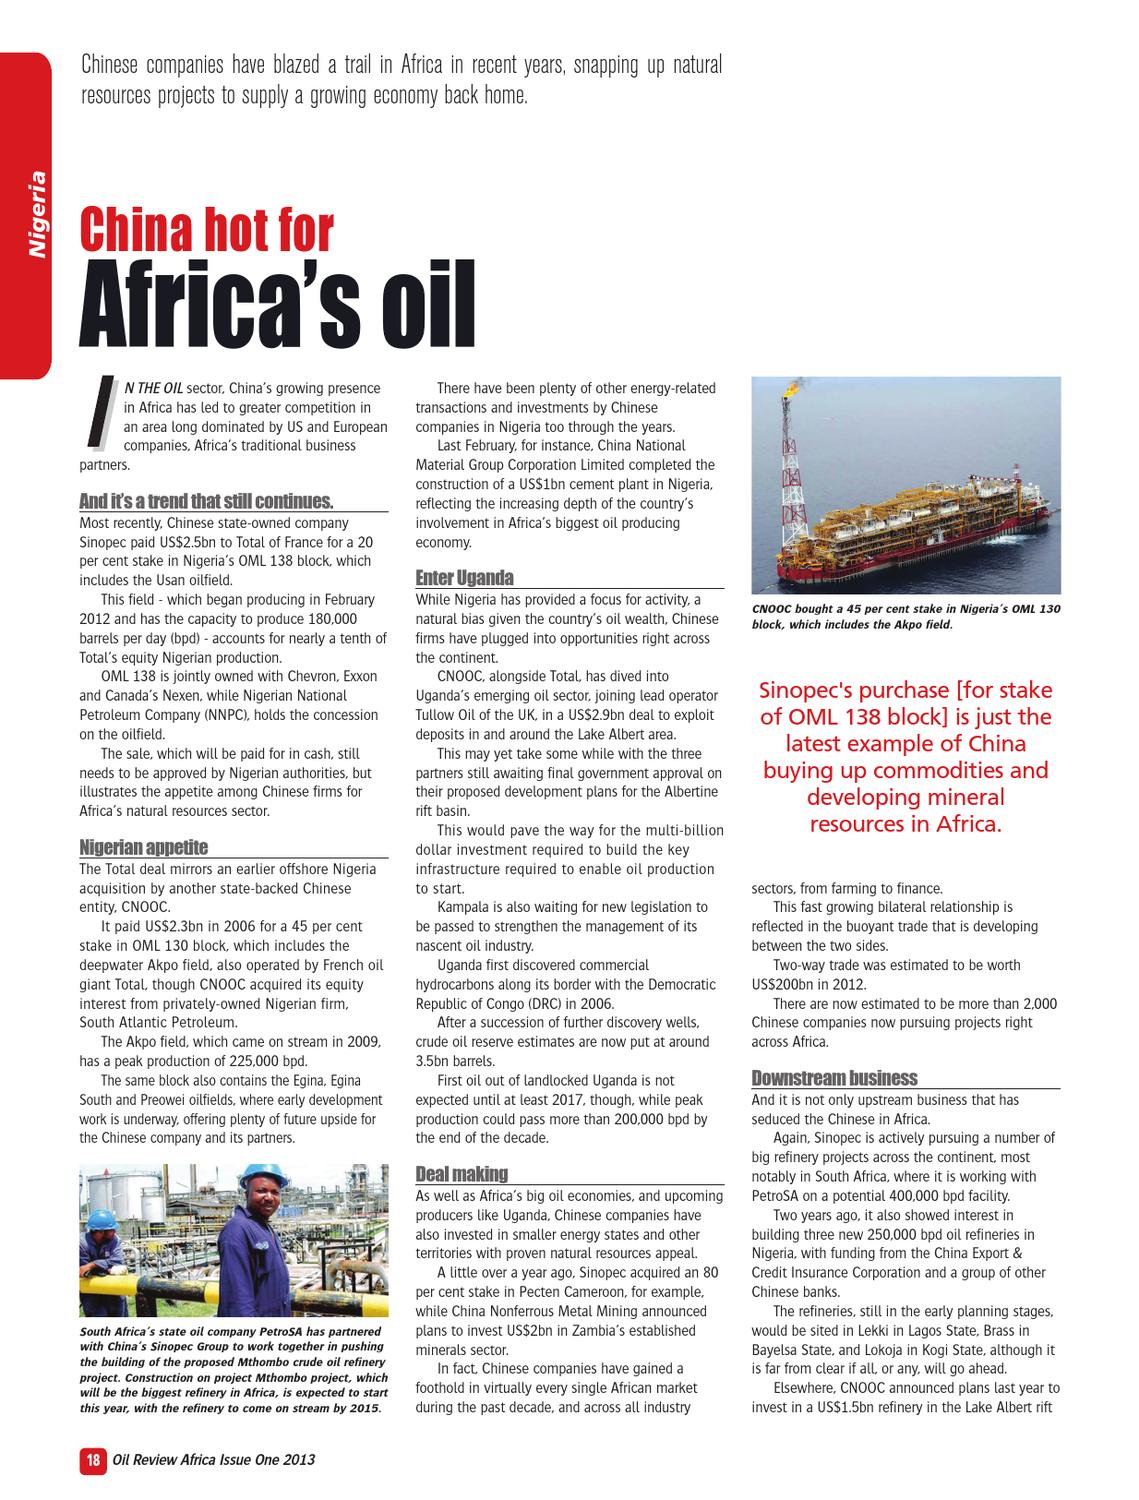 Oil Review Africa 1 2013